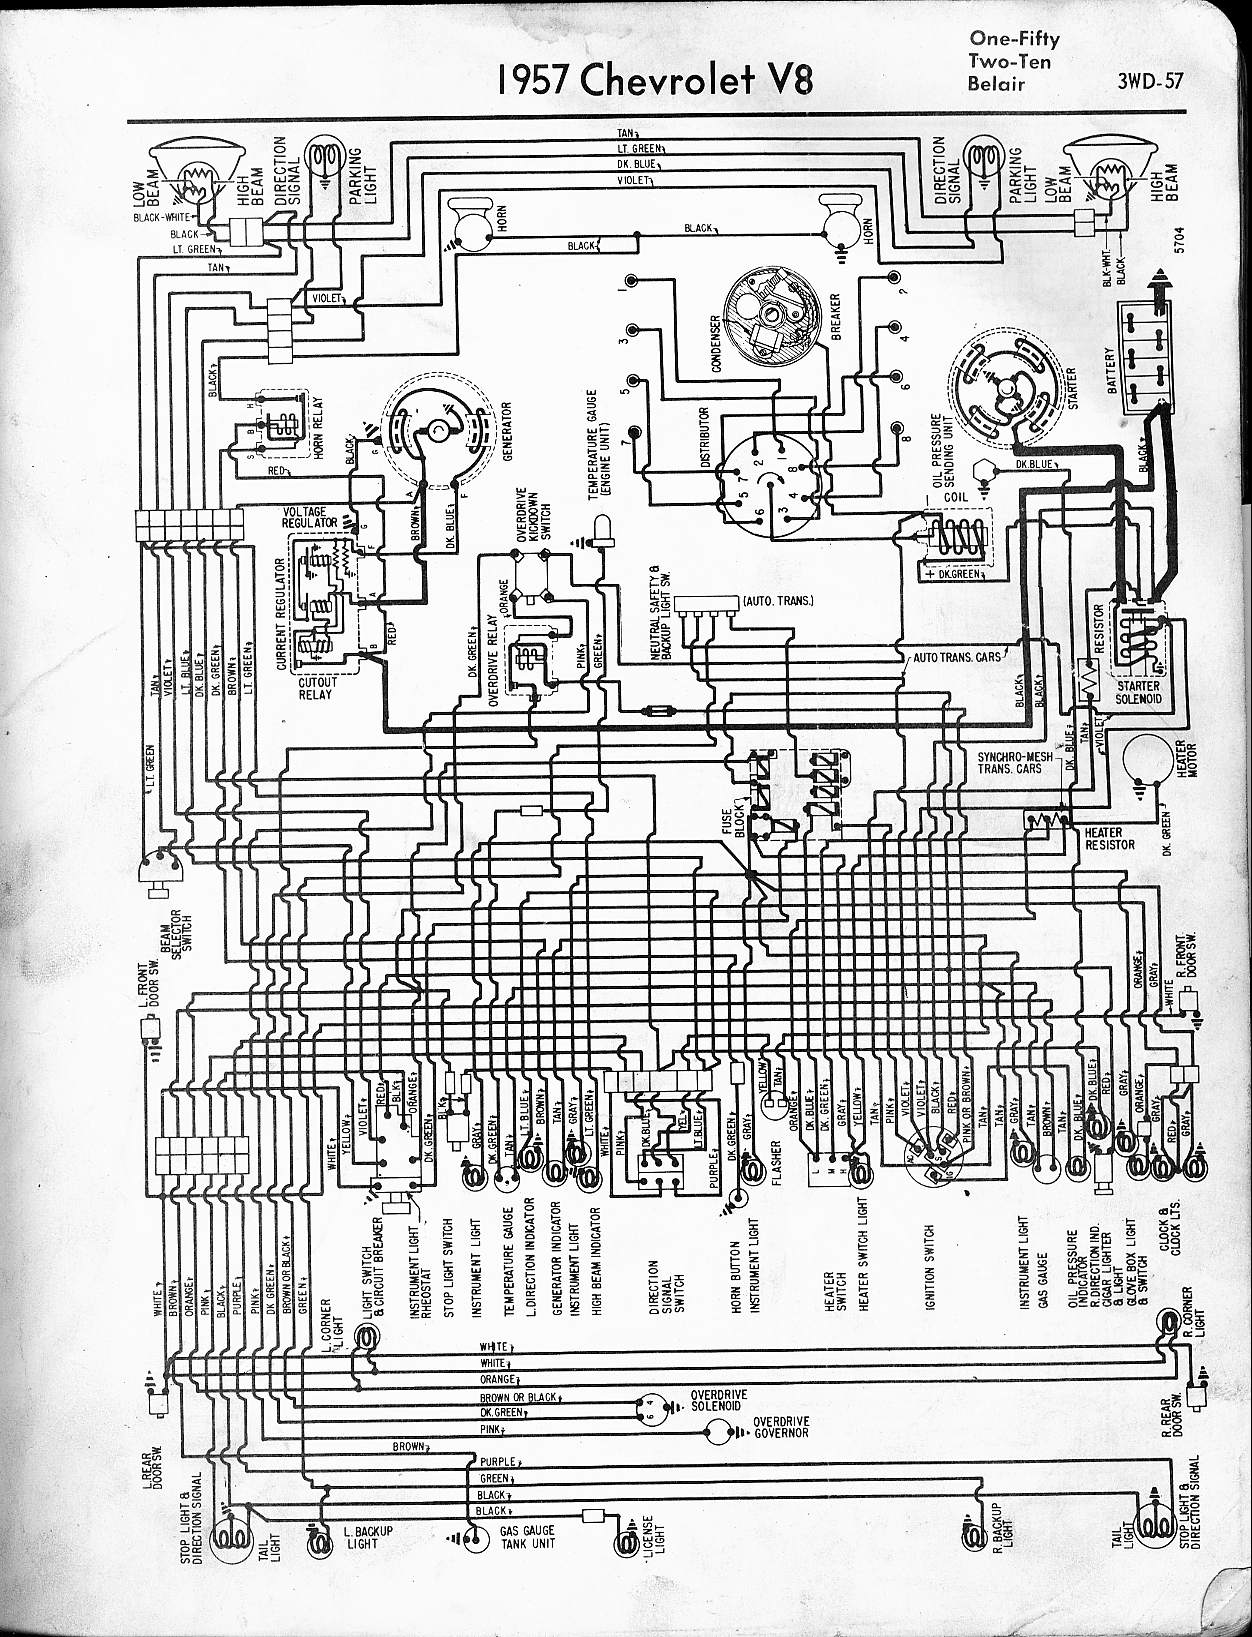 Mwirechev Wd on 57 Chevy Dash Wiring Diagram